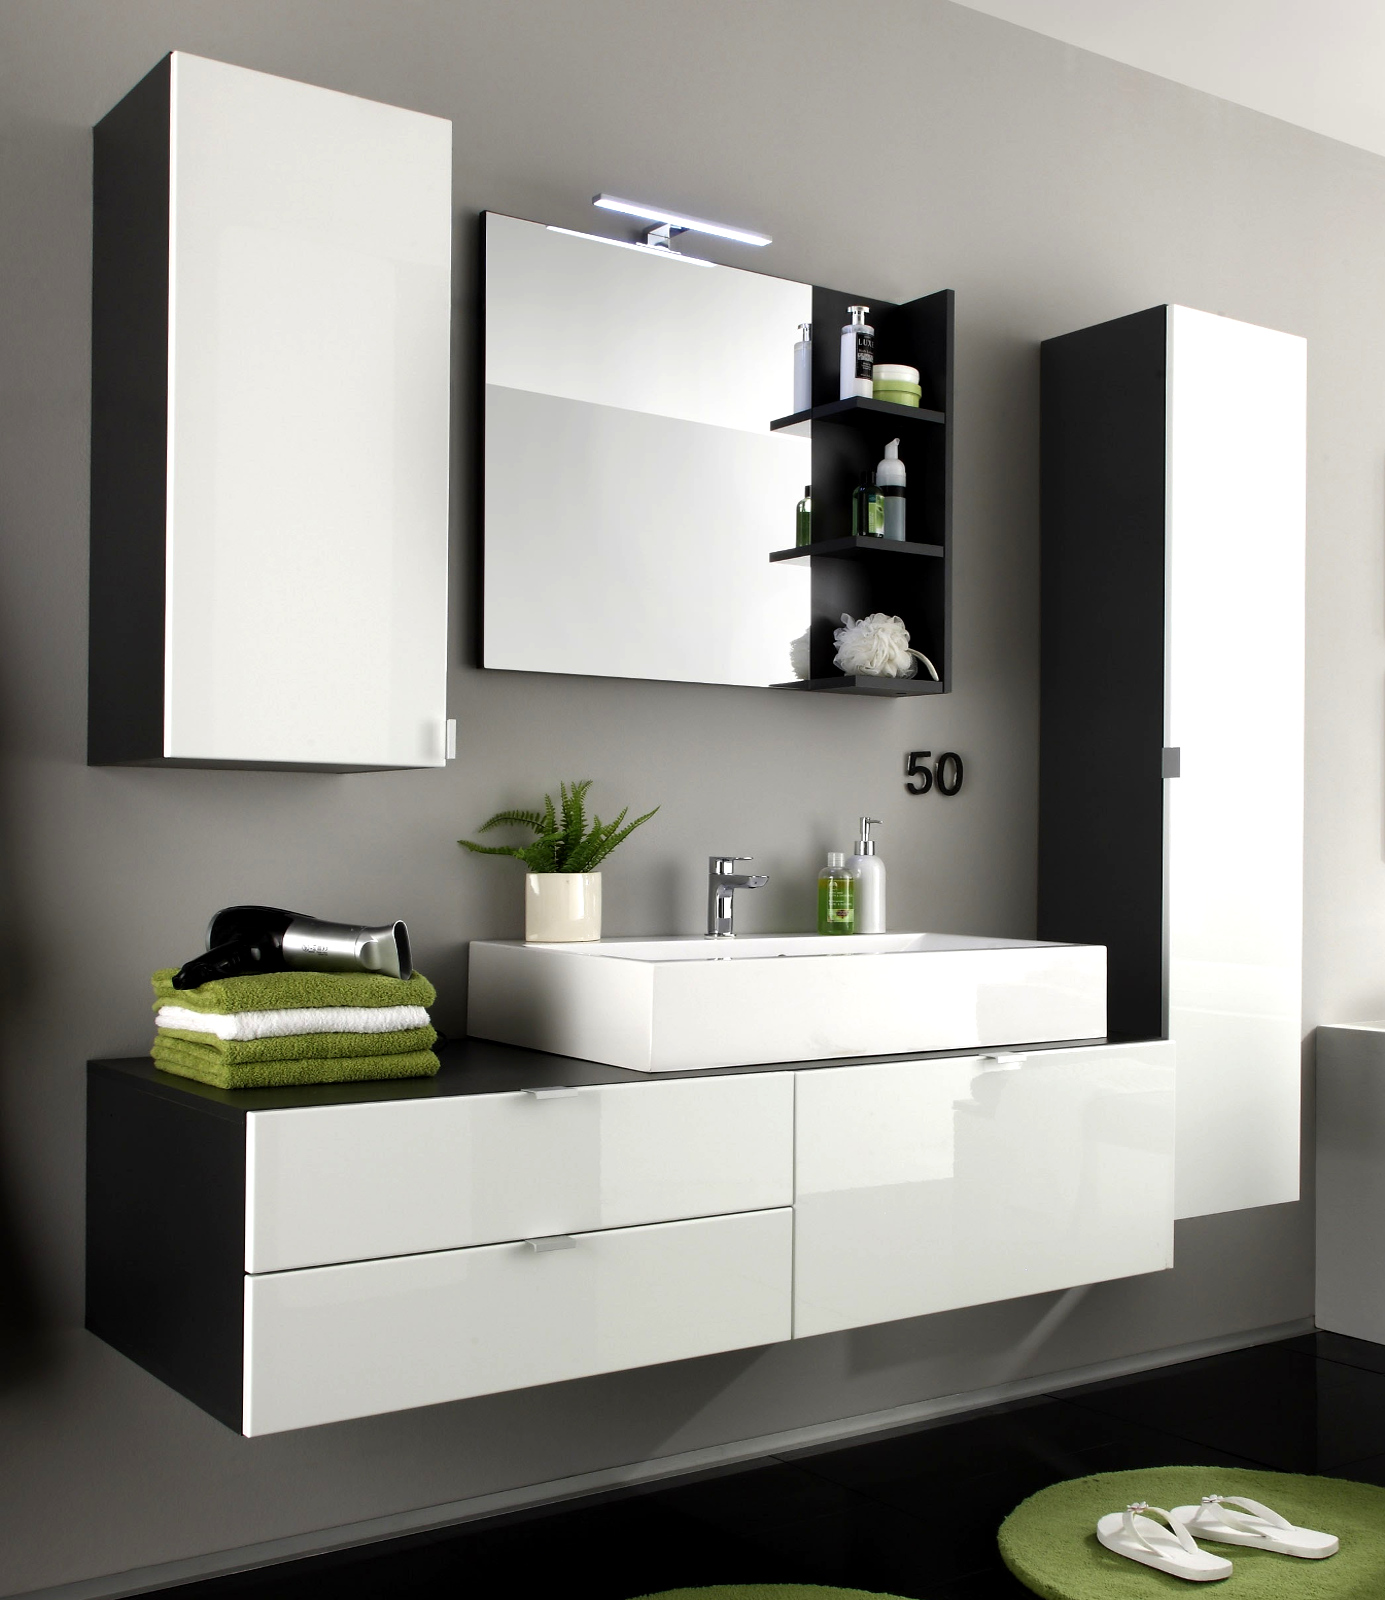 badm bel beach wei grau g nstig online kaufen. Black Bedroom Furniture Sets. Home Design Ideas